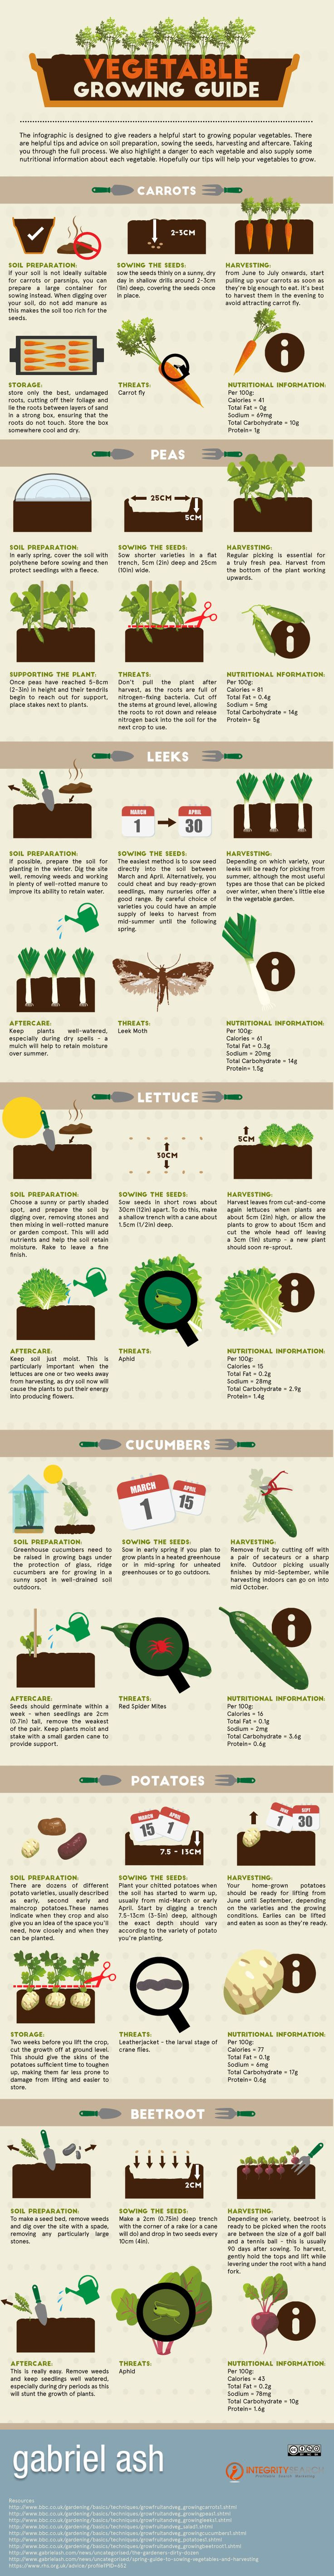 From composting, to starting your garden from scratch, to attracting pollinators, to making your garden 'greener', we've got you covered. We recently came across this nifty infographic, Vegetable Growing Guide from Gabriel Ash and thought it worthy�